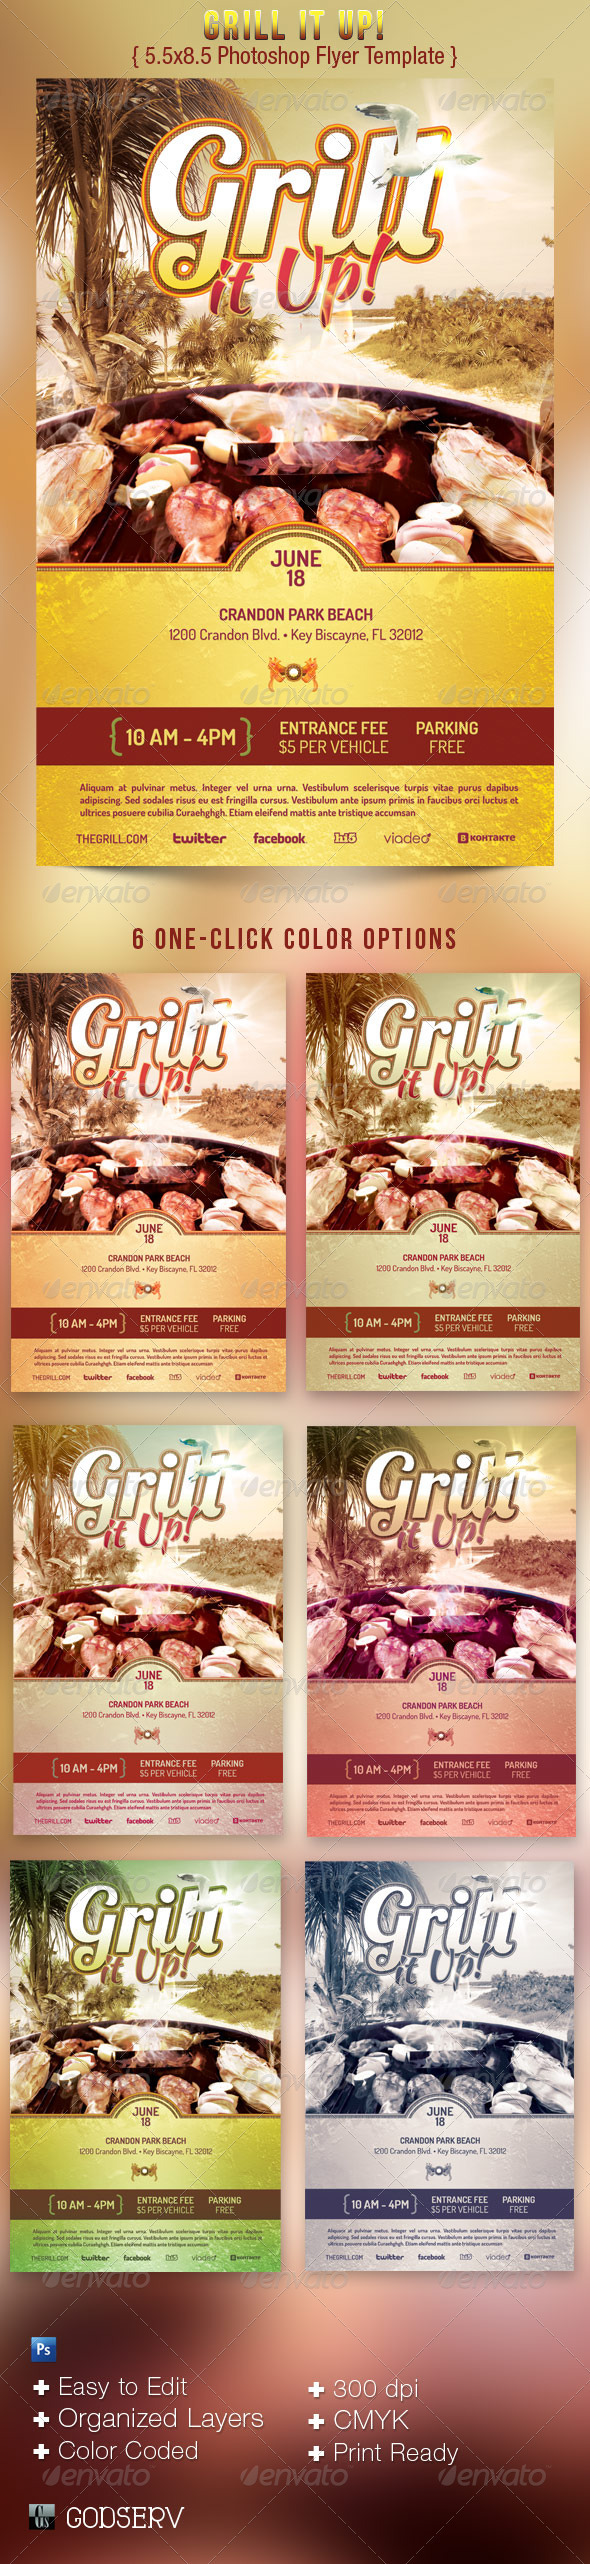 GraphicRiver Grill It Up Flyer Template 2455419